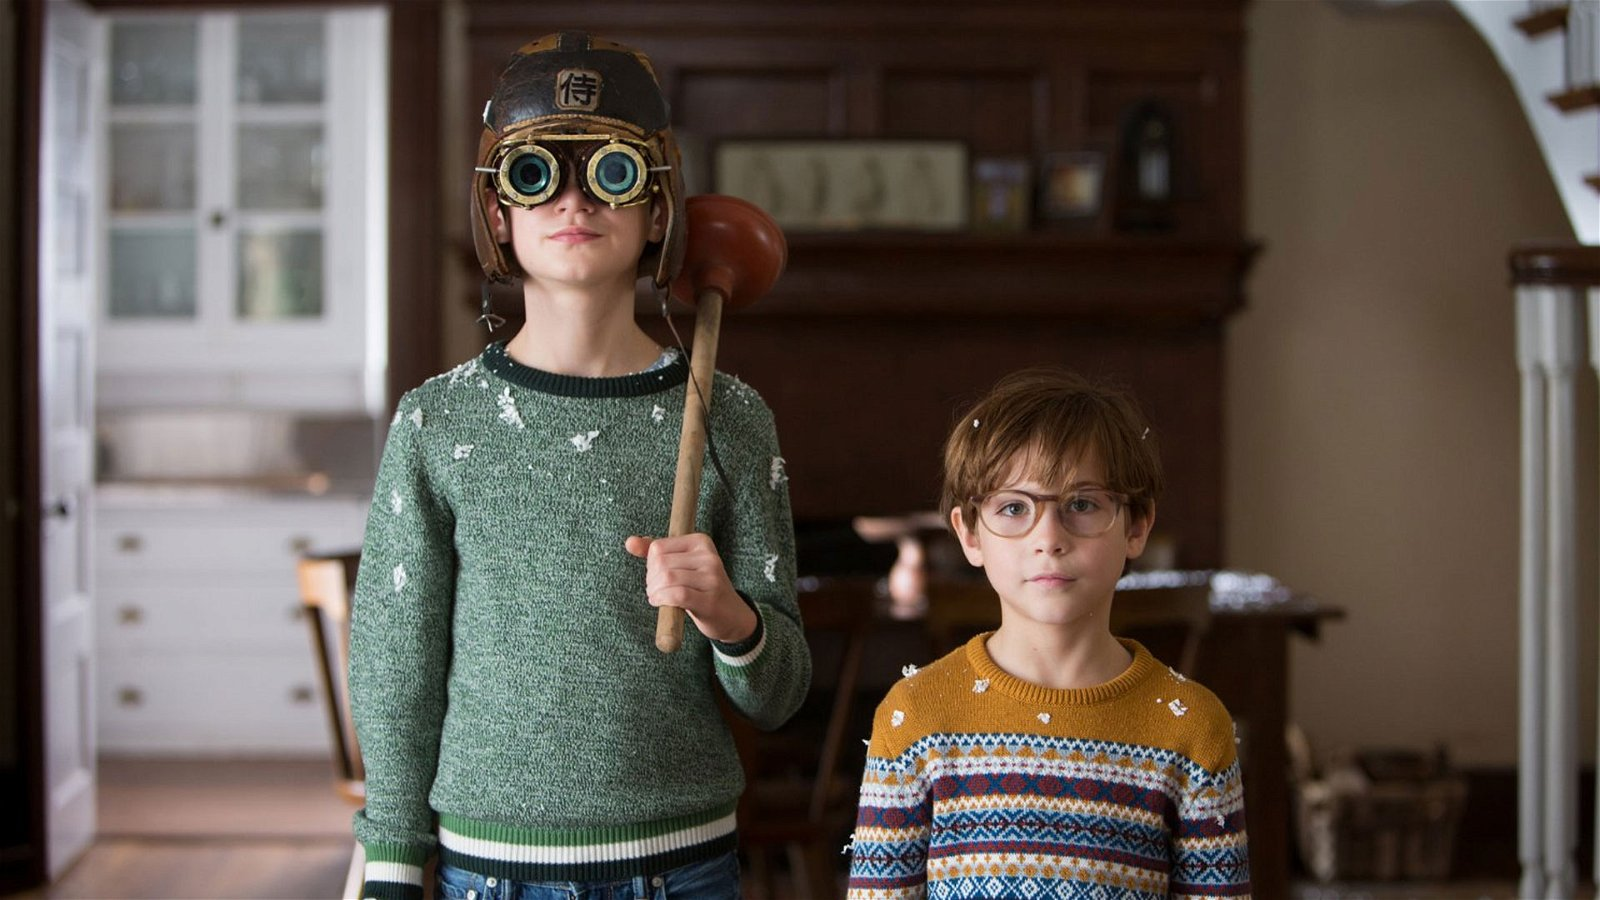 Colin Trevorrow's The Book of Henry Does Not Mean Star Wars Episode IX is Doomed 4